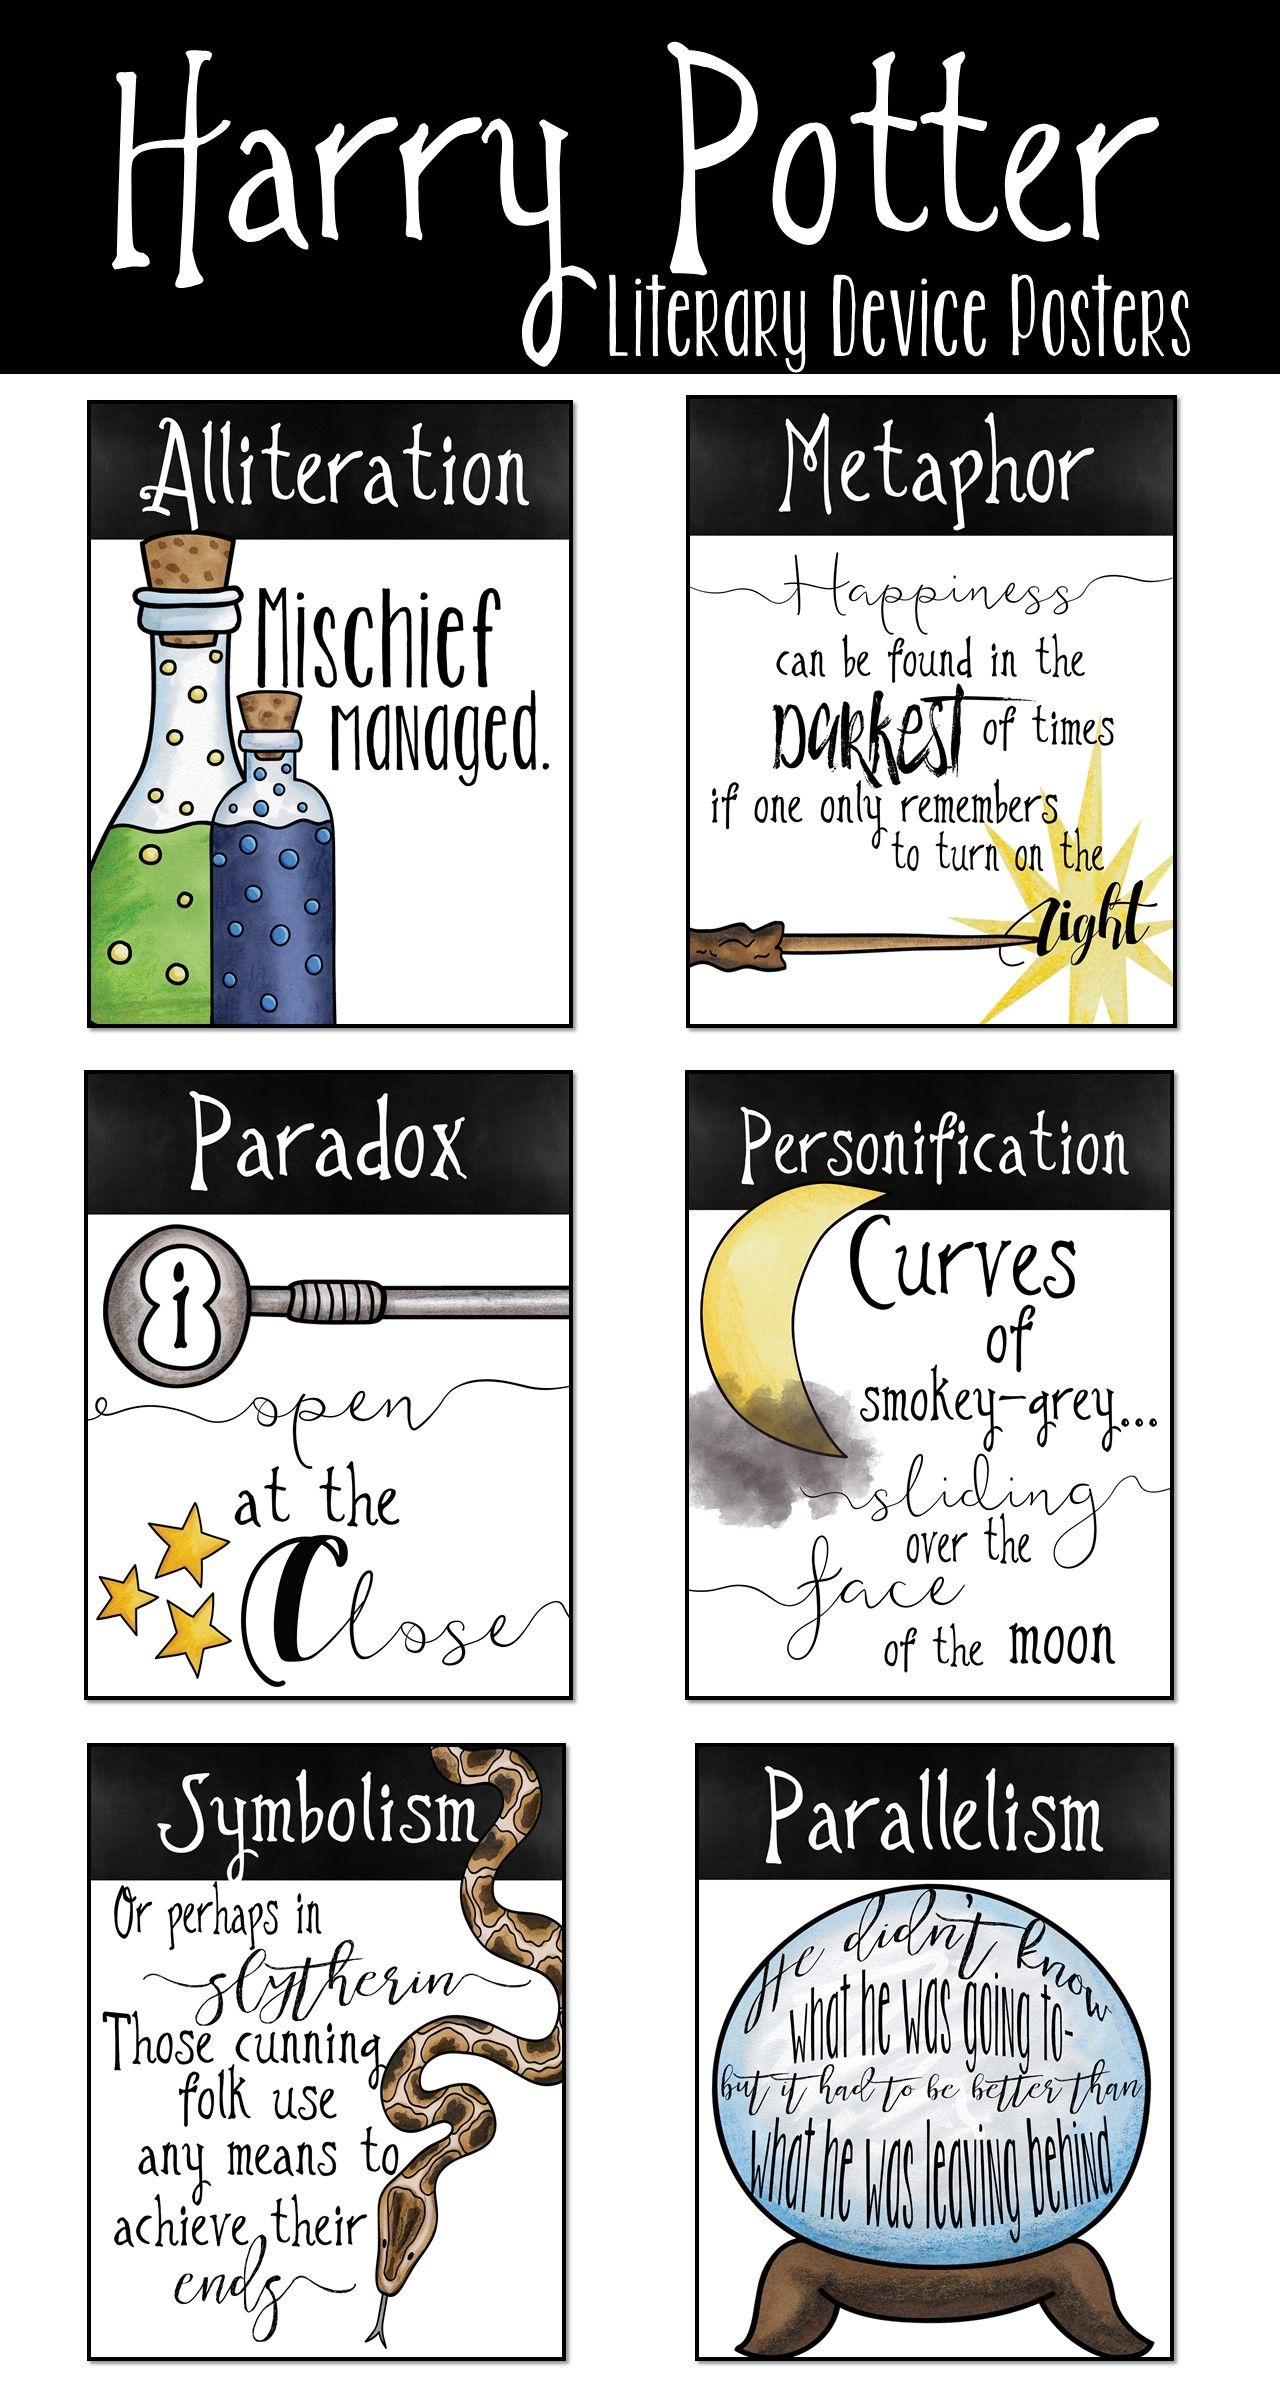 Harry Potter Literary Device Posters